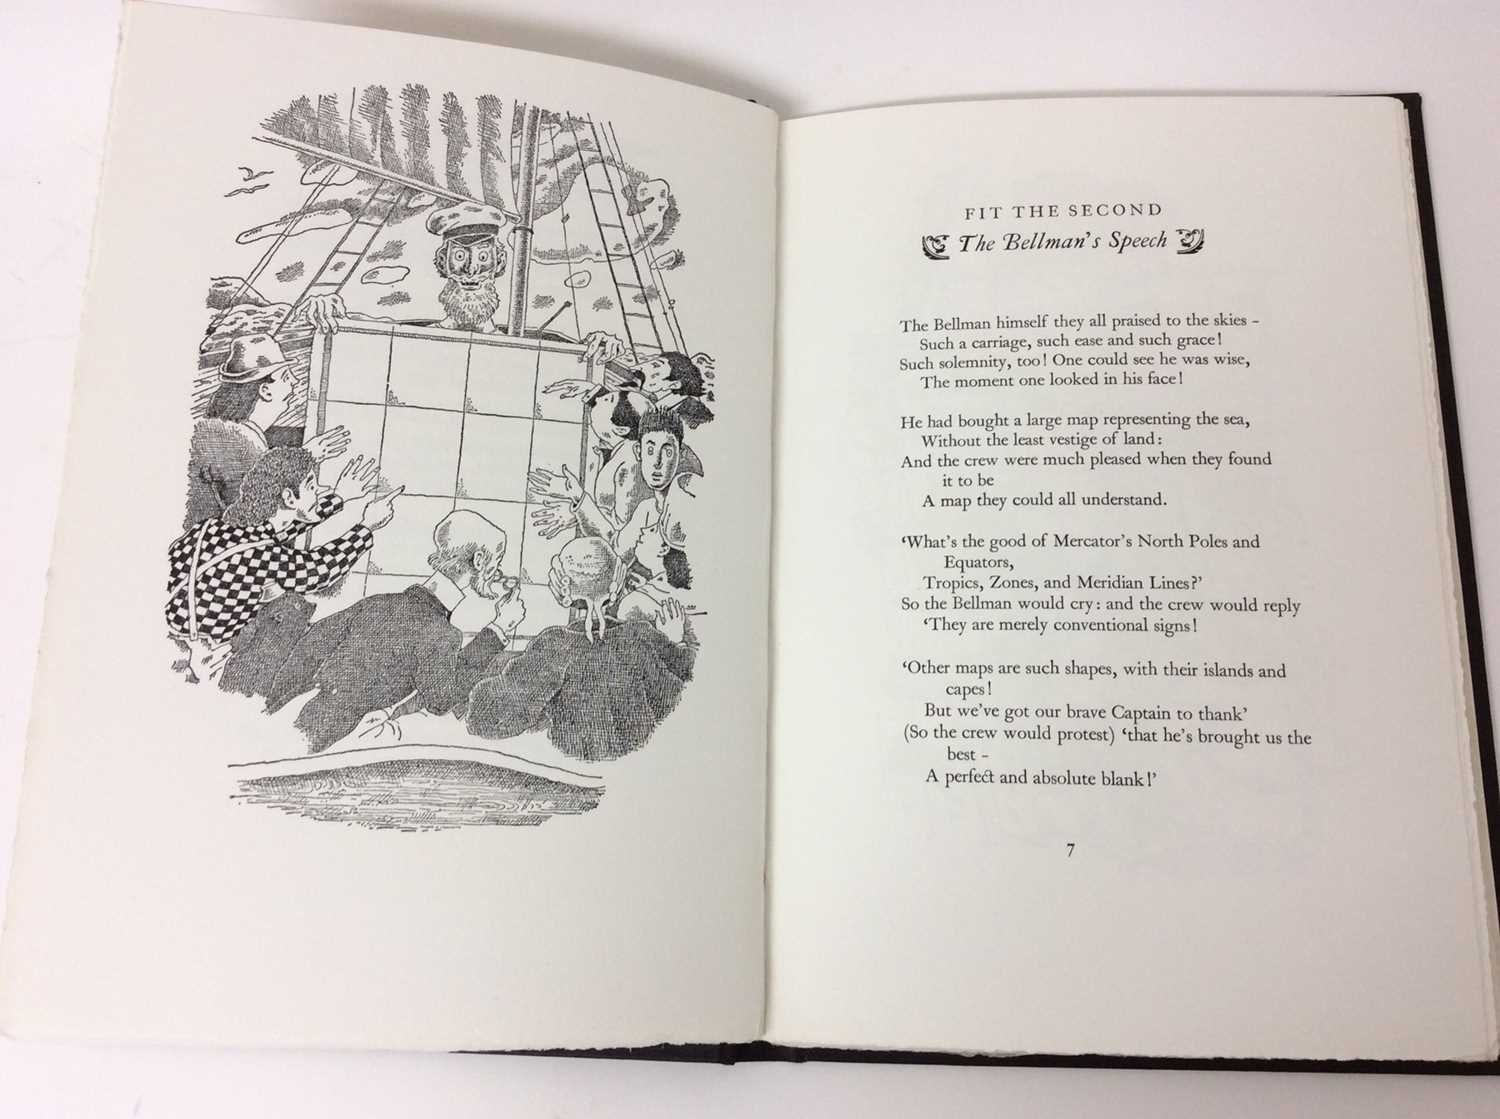 Lewis Carroll - The Hunting of the Snark, Whittington Press 1975, 404/750 - Image 6 of 10